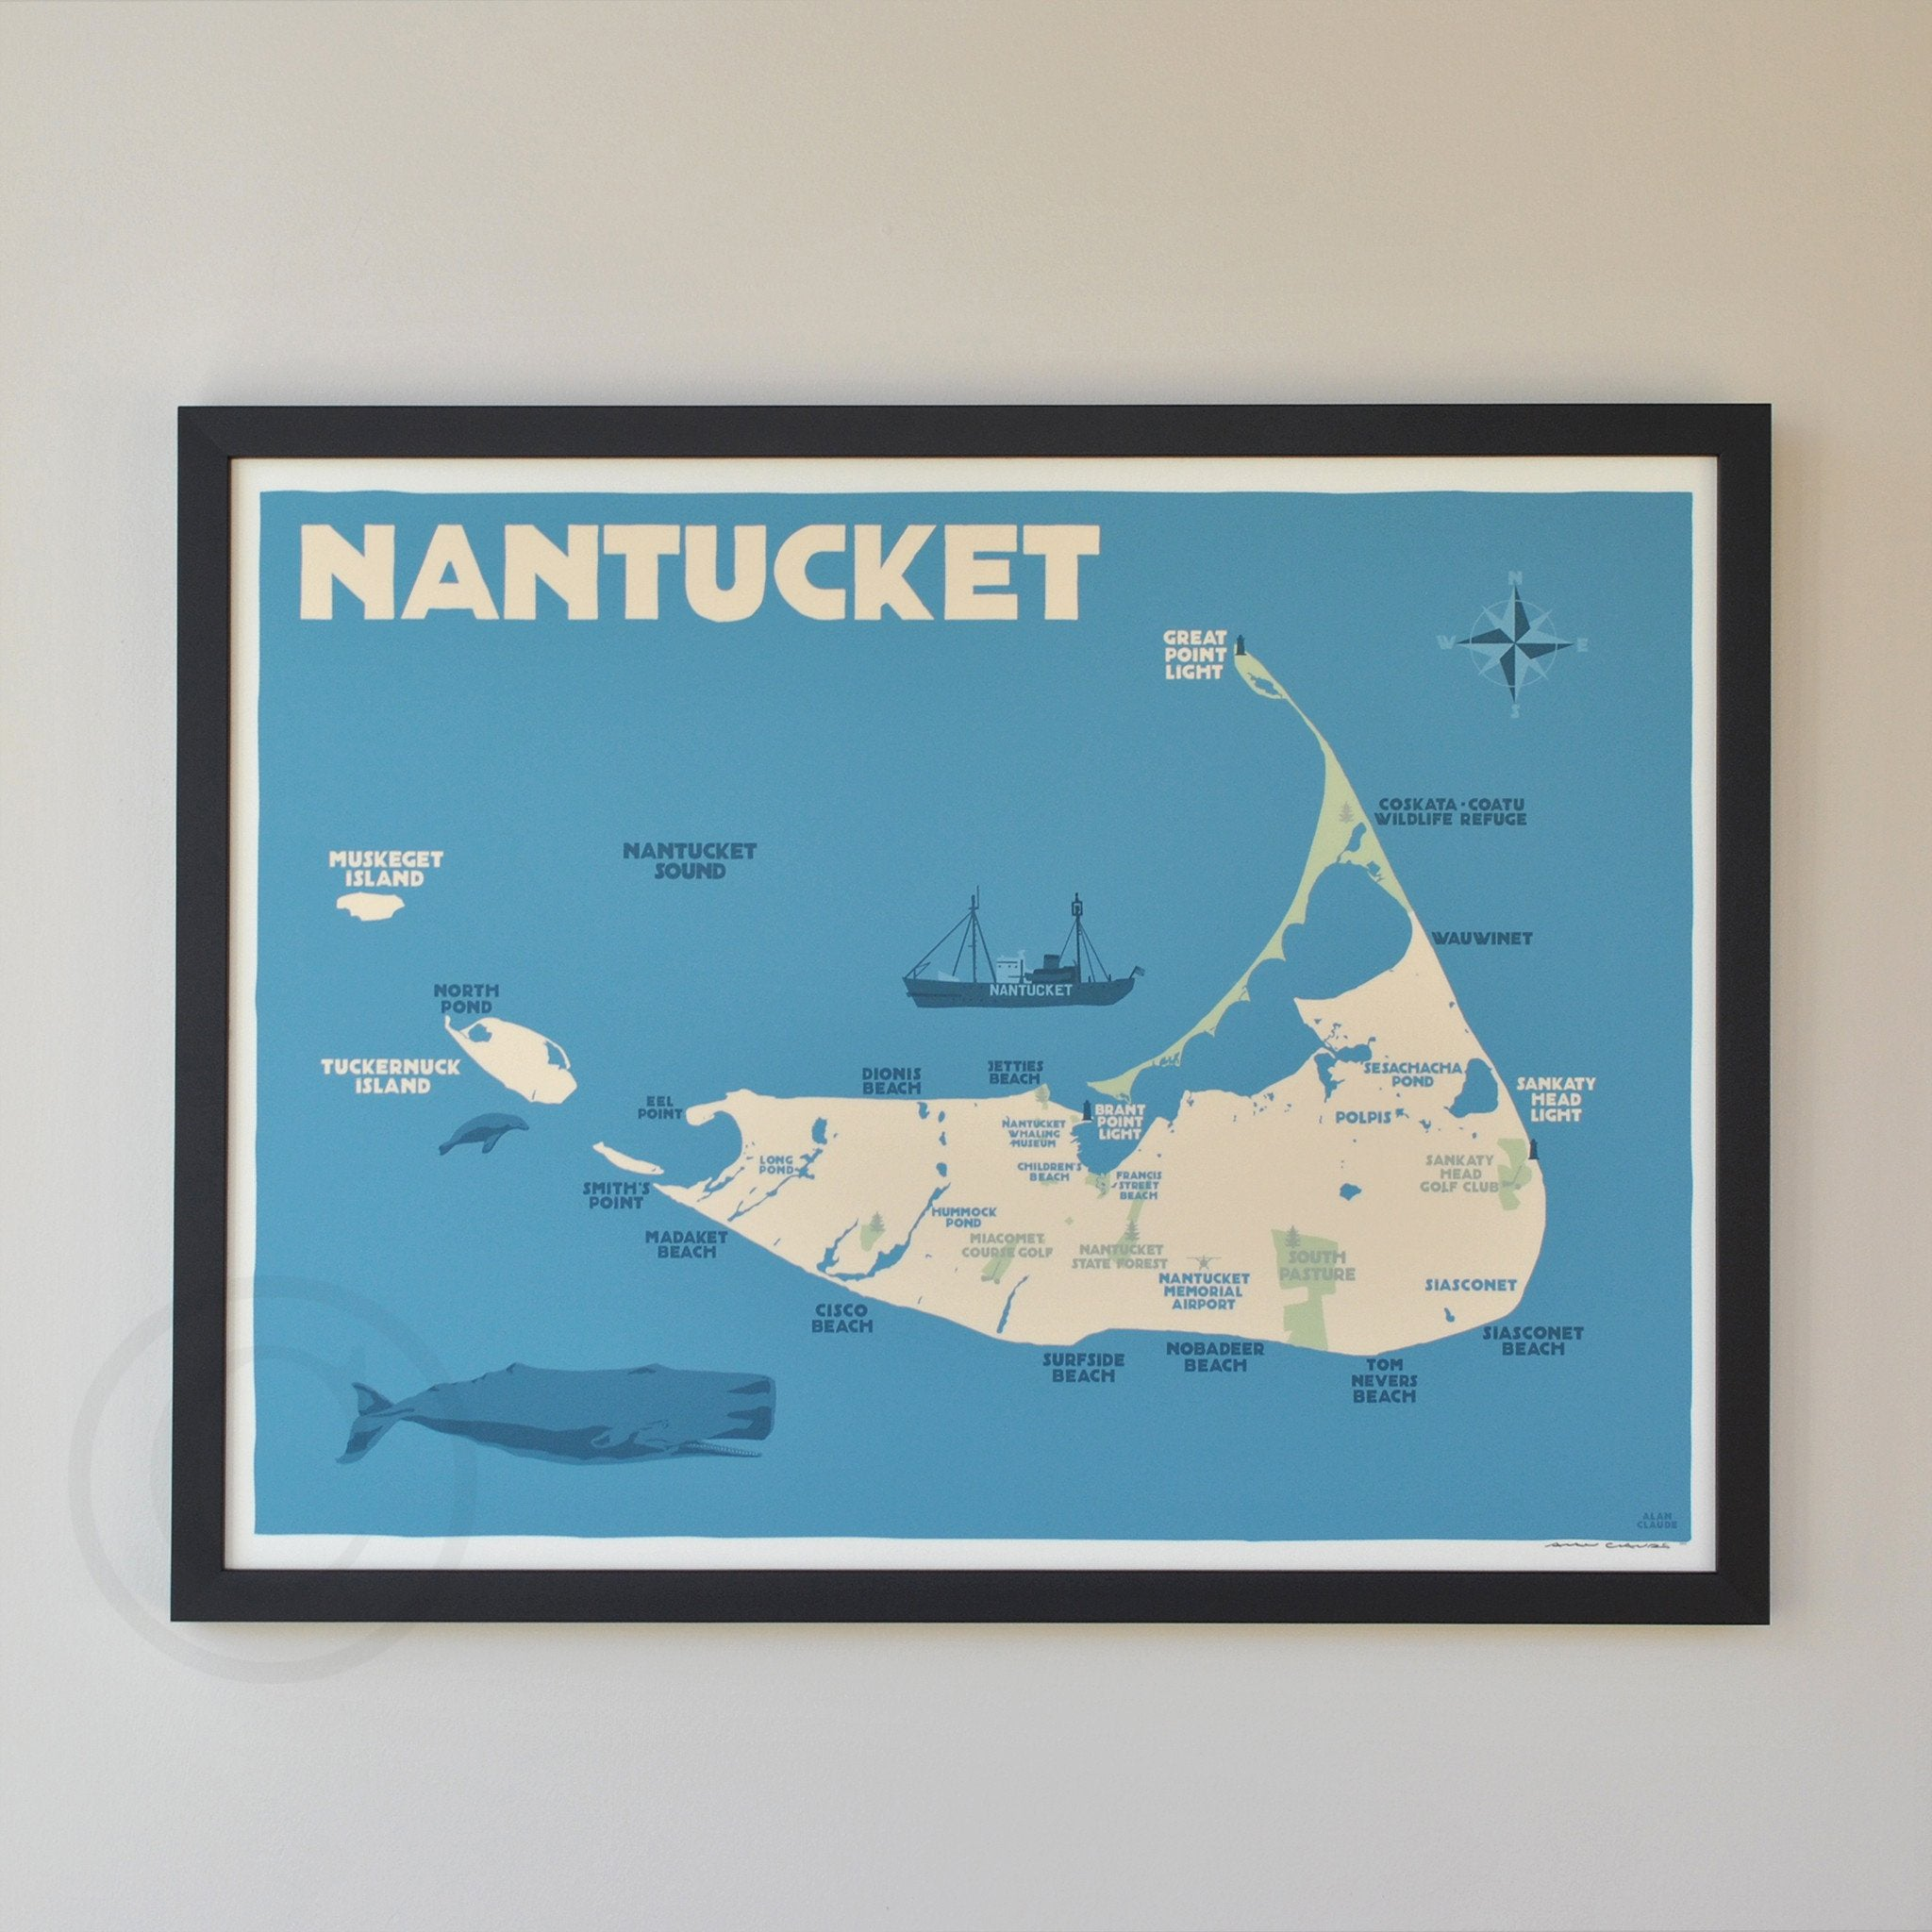 "Nantucket Map Art Print 18"" x 24"" Framed Travel Poster - Massachusetts"